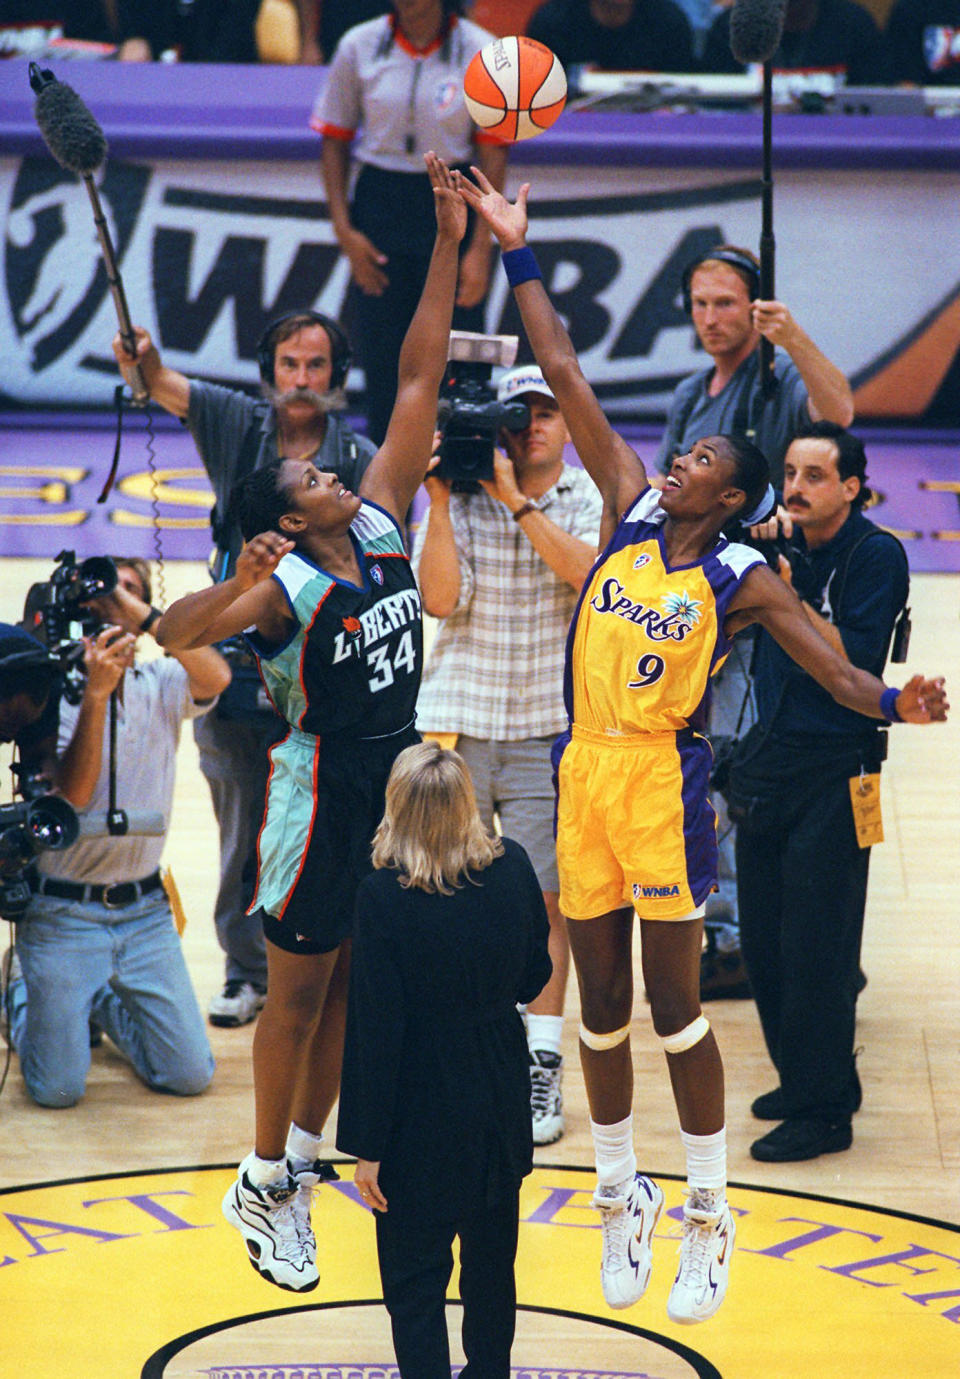 """FILE - In this June 21, 1997, file photo, Los Angeles Sparks' Lisa Leslie, right, and New York Liberty's Kym Hampton leap for the ball during the opening tip of the inaugural WNBA basketball at the Forum in Inglewood, Calif. Hampton and Sue Wicks are """"Liberty Legends,"""" who have worked in the New York basketball community for years. (AP Photo/Michael Caulfield, File)"""